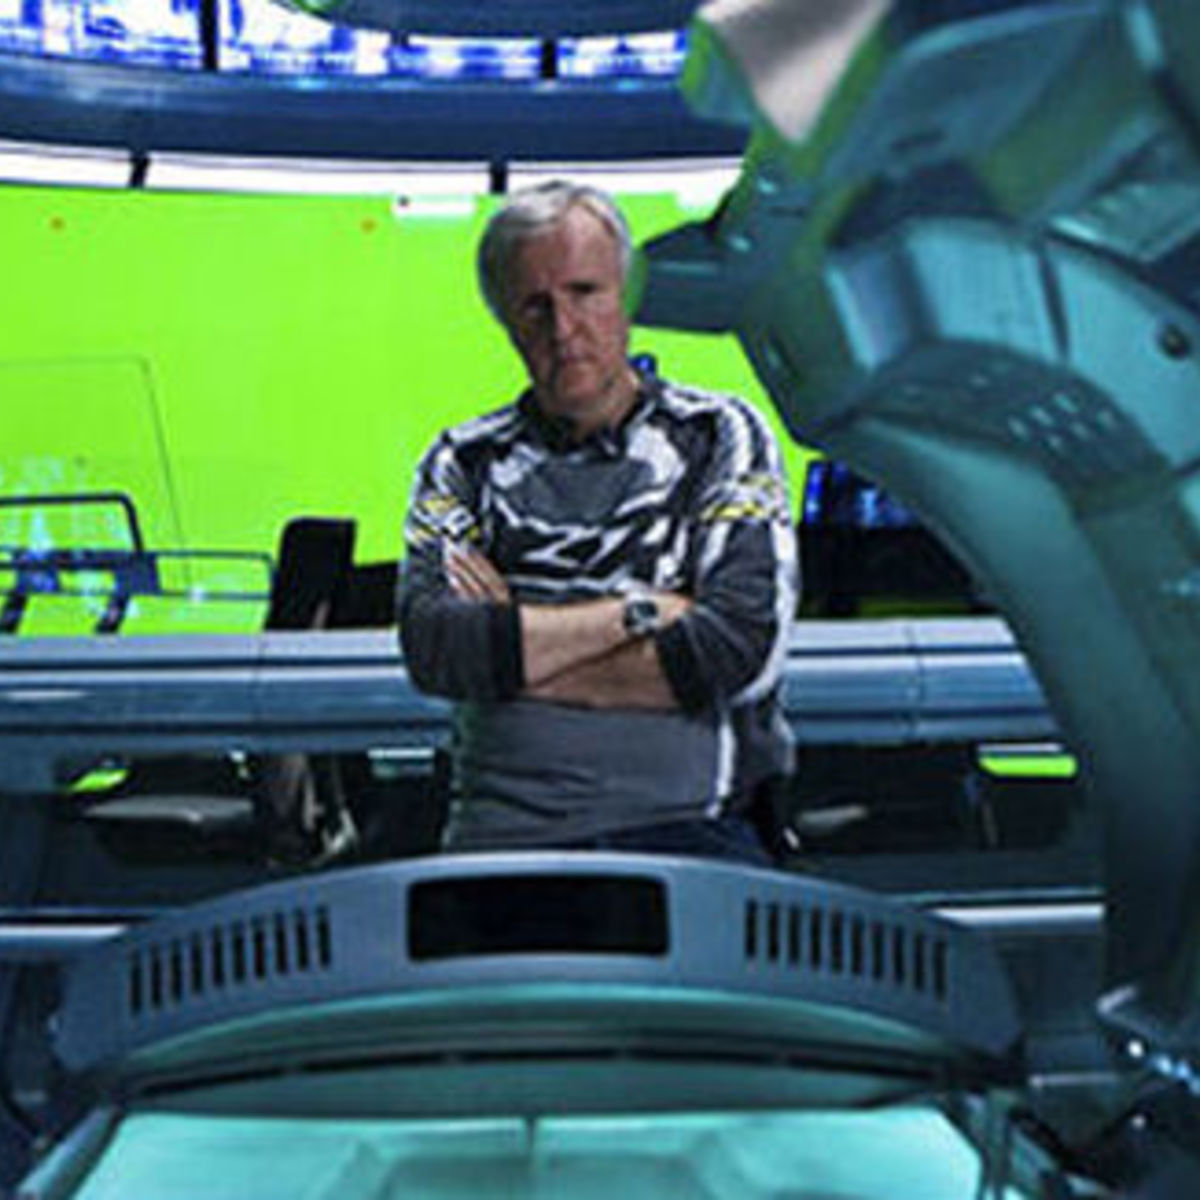 Avatar_JamesCameron_small.jpg